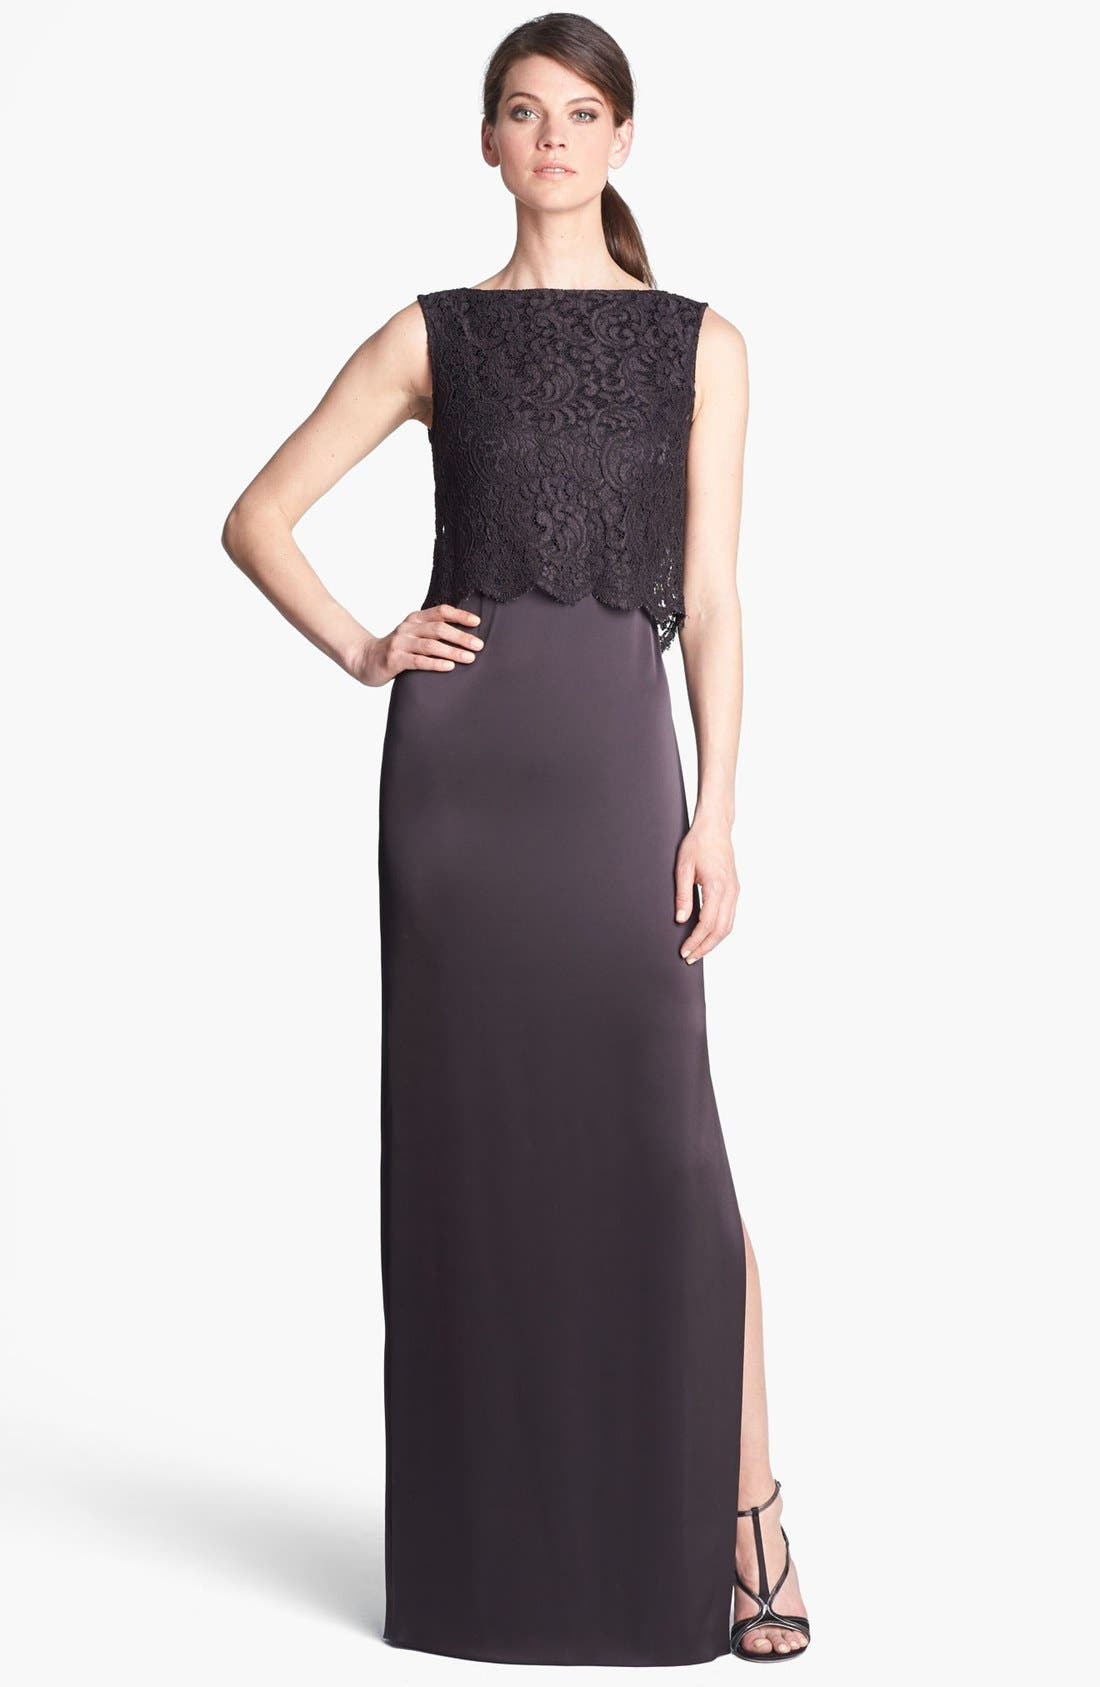 Alternate Image 1 Selected - St. John Collection Plume Lace Overlay Liquid Satin Gown